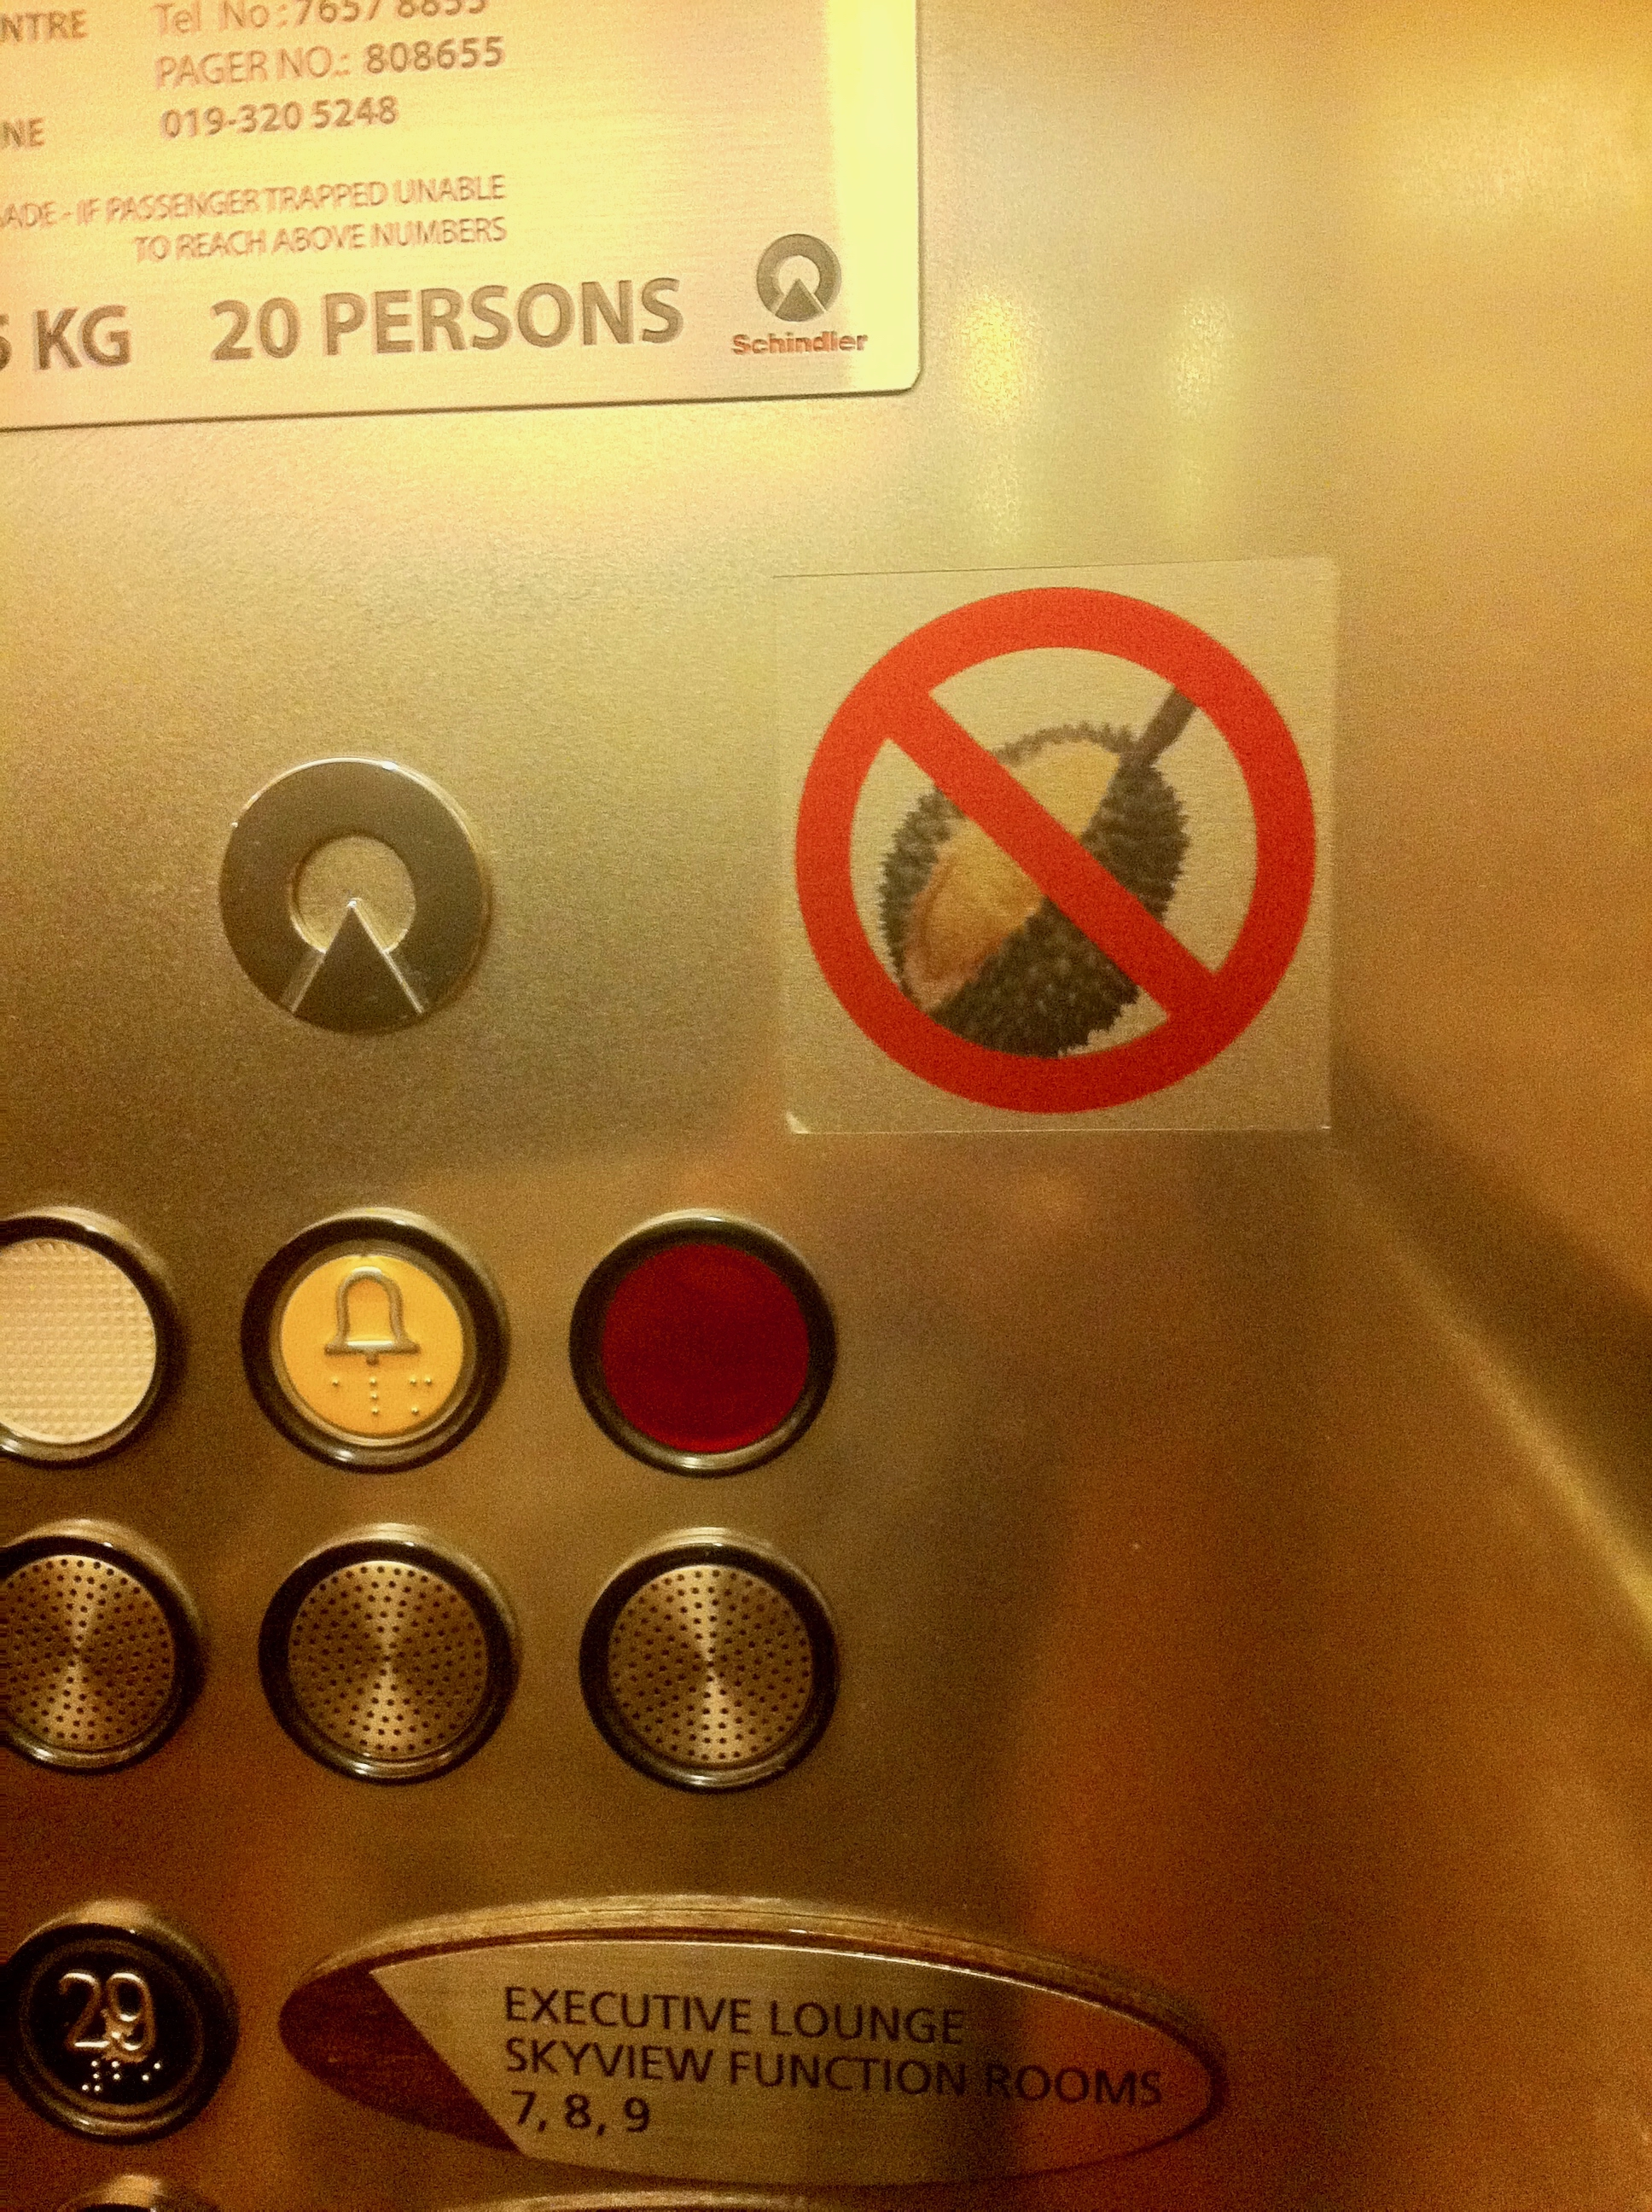 No smelly durians allowed in the elevator of a hotel in Kuala Lumpur, Malaysia. Photo: (C) Remko Tanis